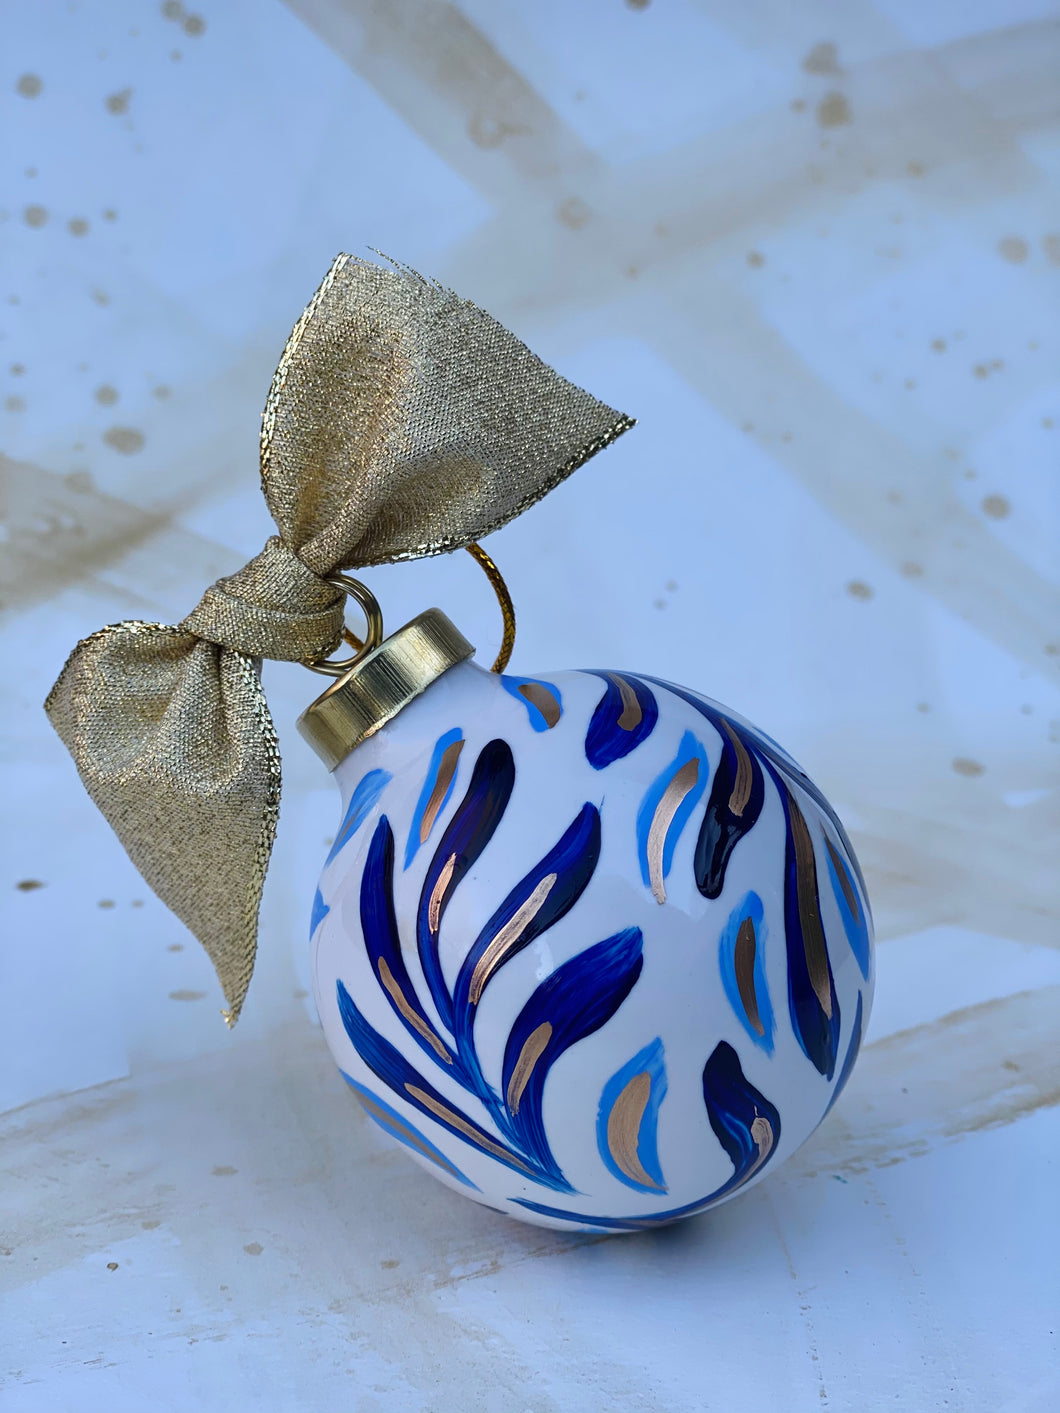 Ceramic Ball ornament 2